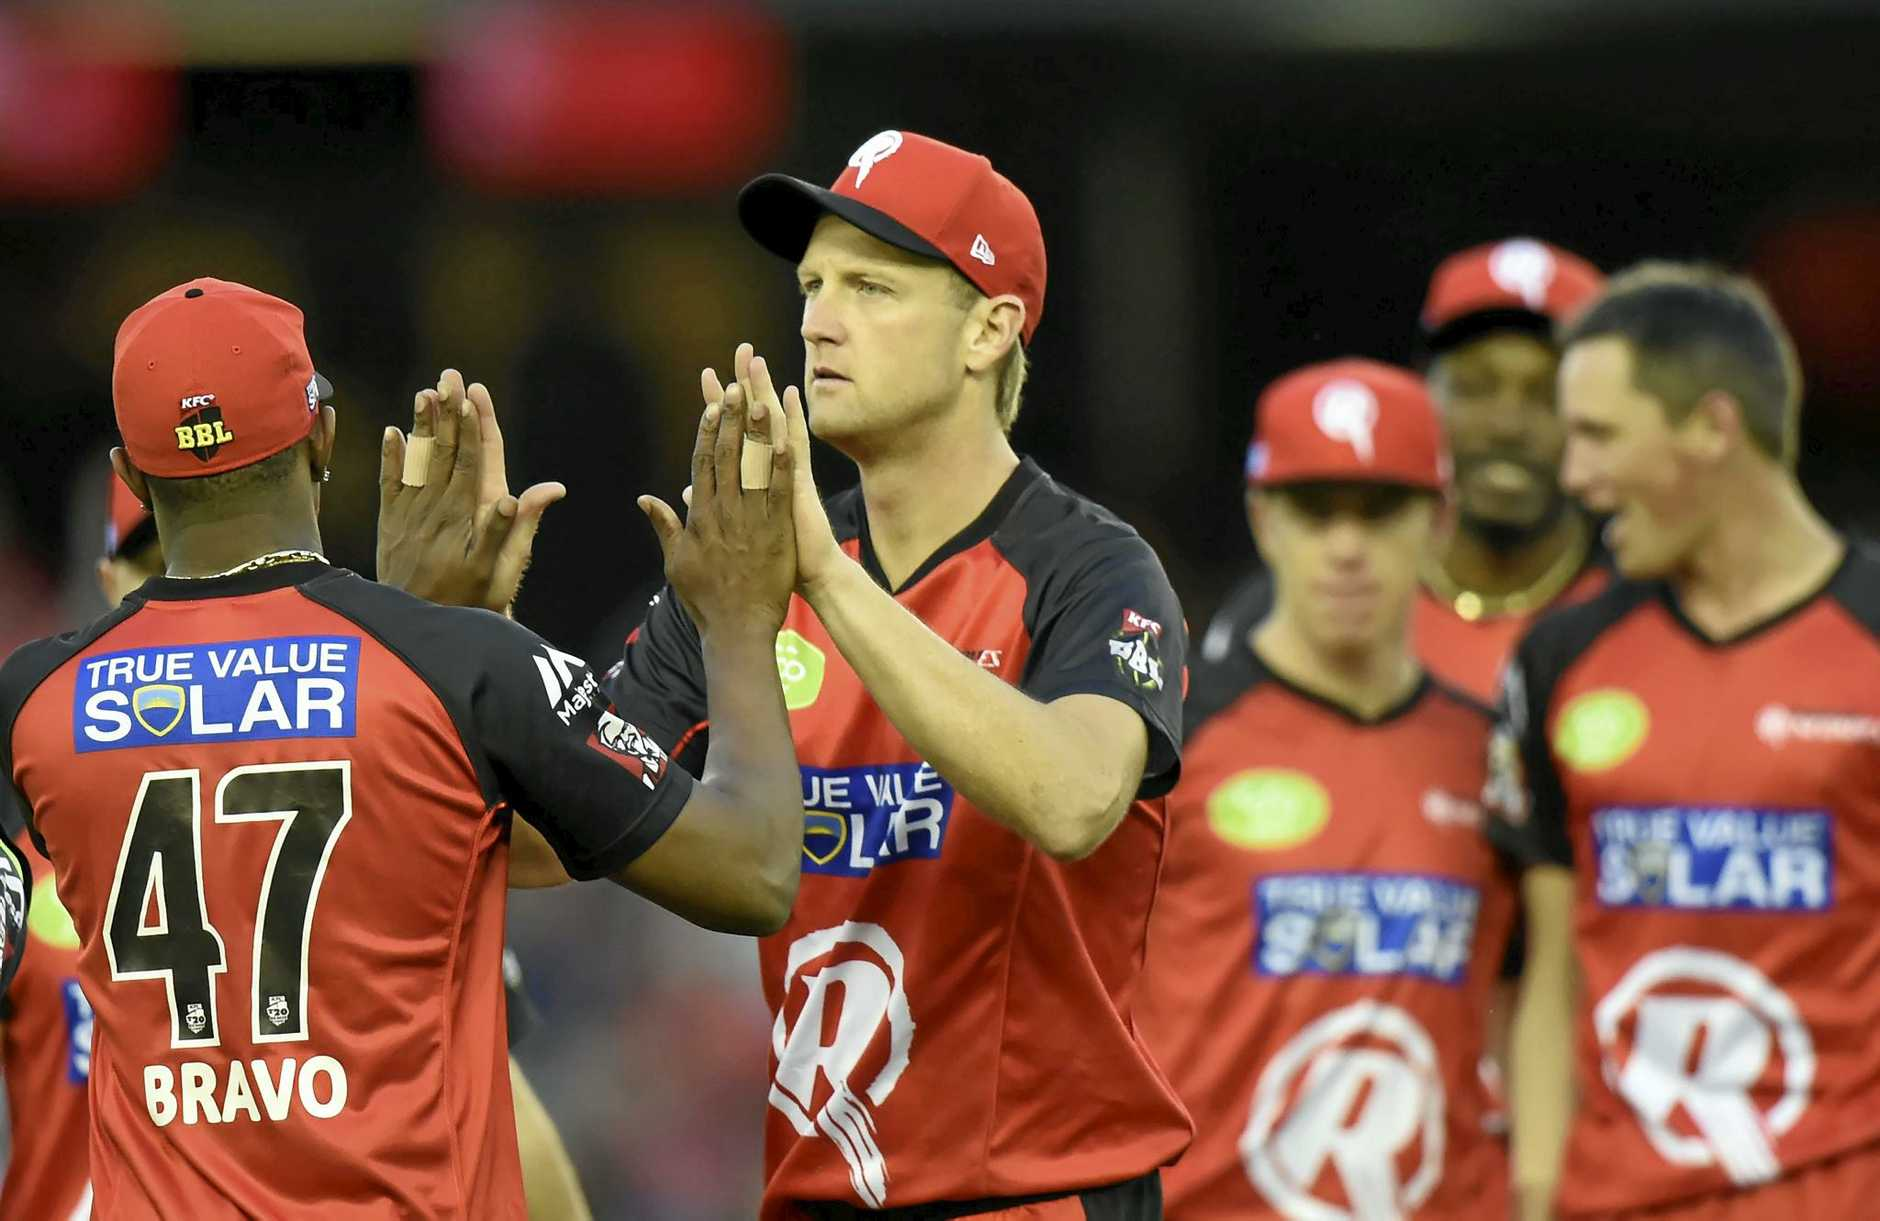 Dwayne Bravo is congratulated by Cameron White on taking a catch for the Melbourne Renegades in the Big Bash League.